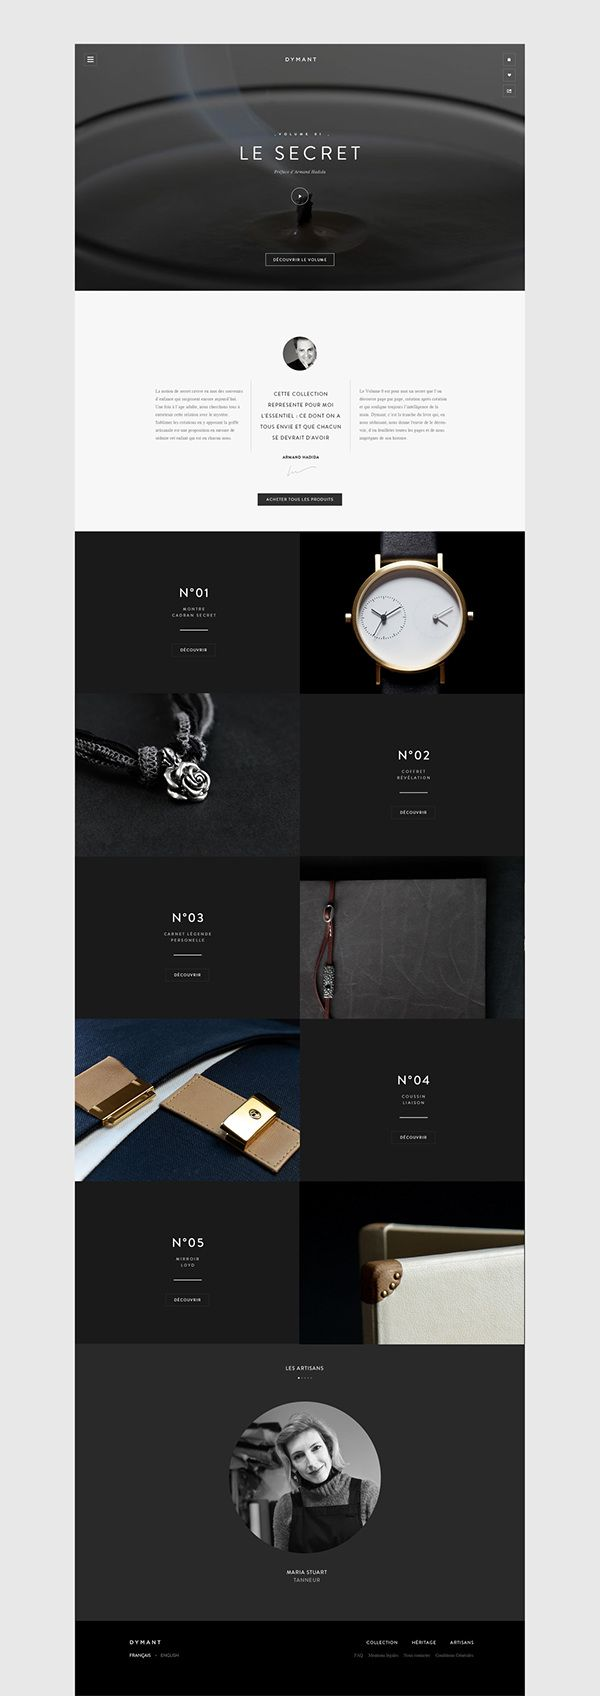 Dymant: concept of a private member club, the website features a high-end responsive e-commerce experience designed to provide an immersive point of view to luxury objects, by Jonathan De Costa on Behance